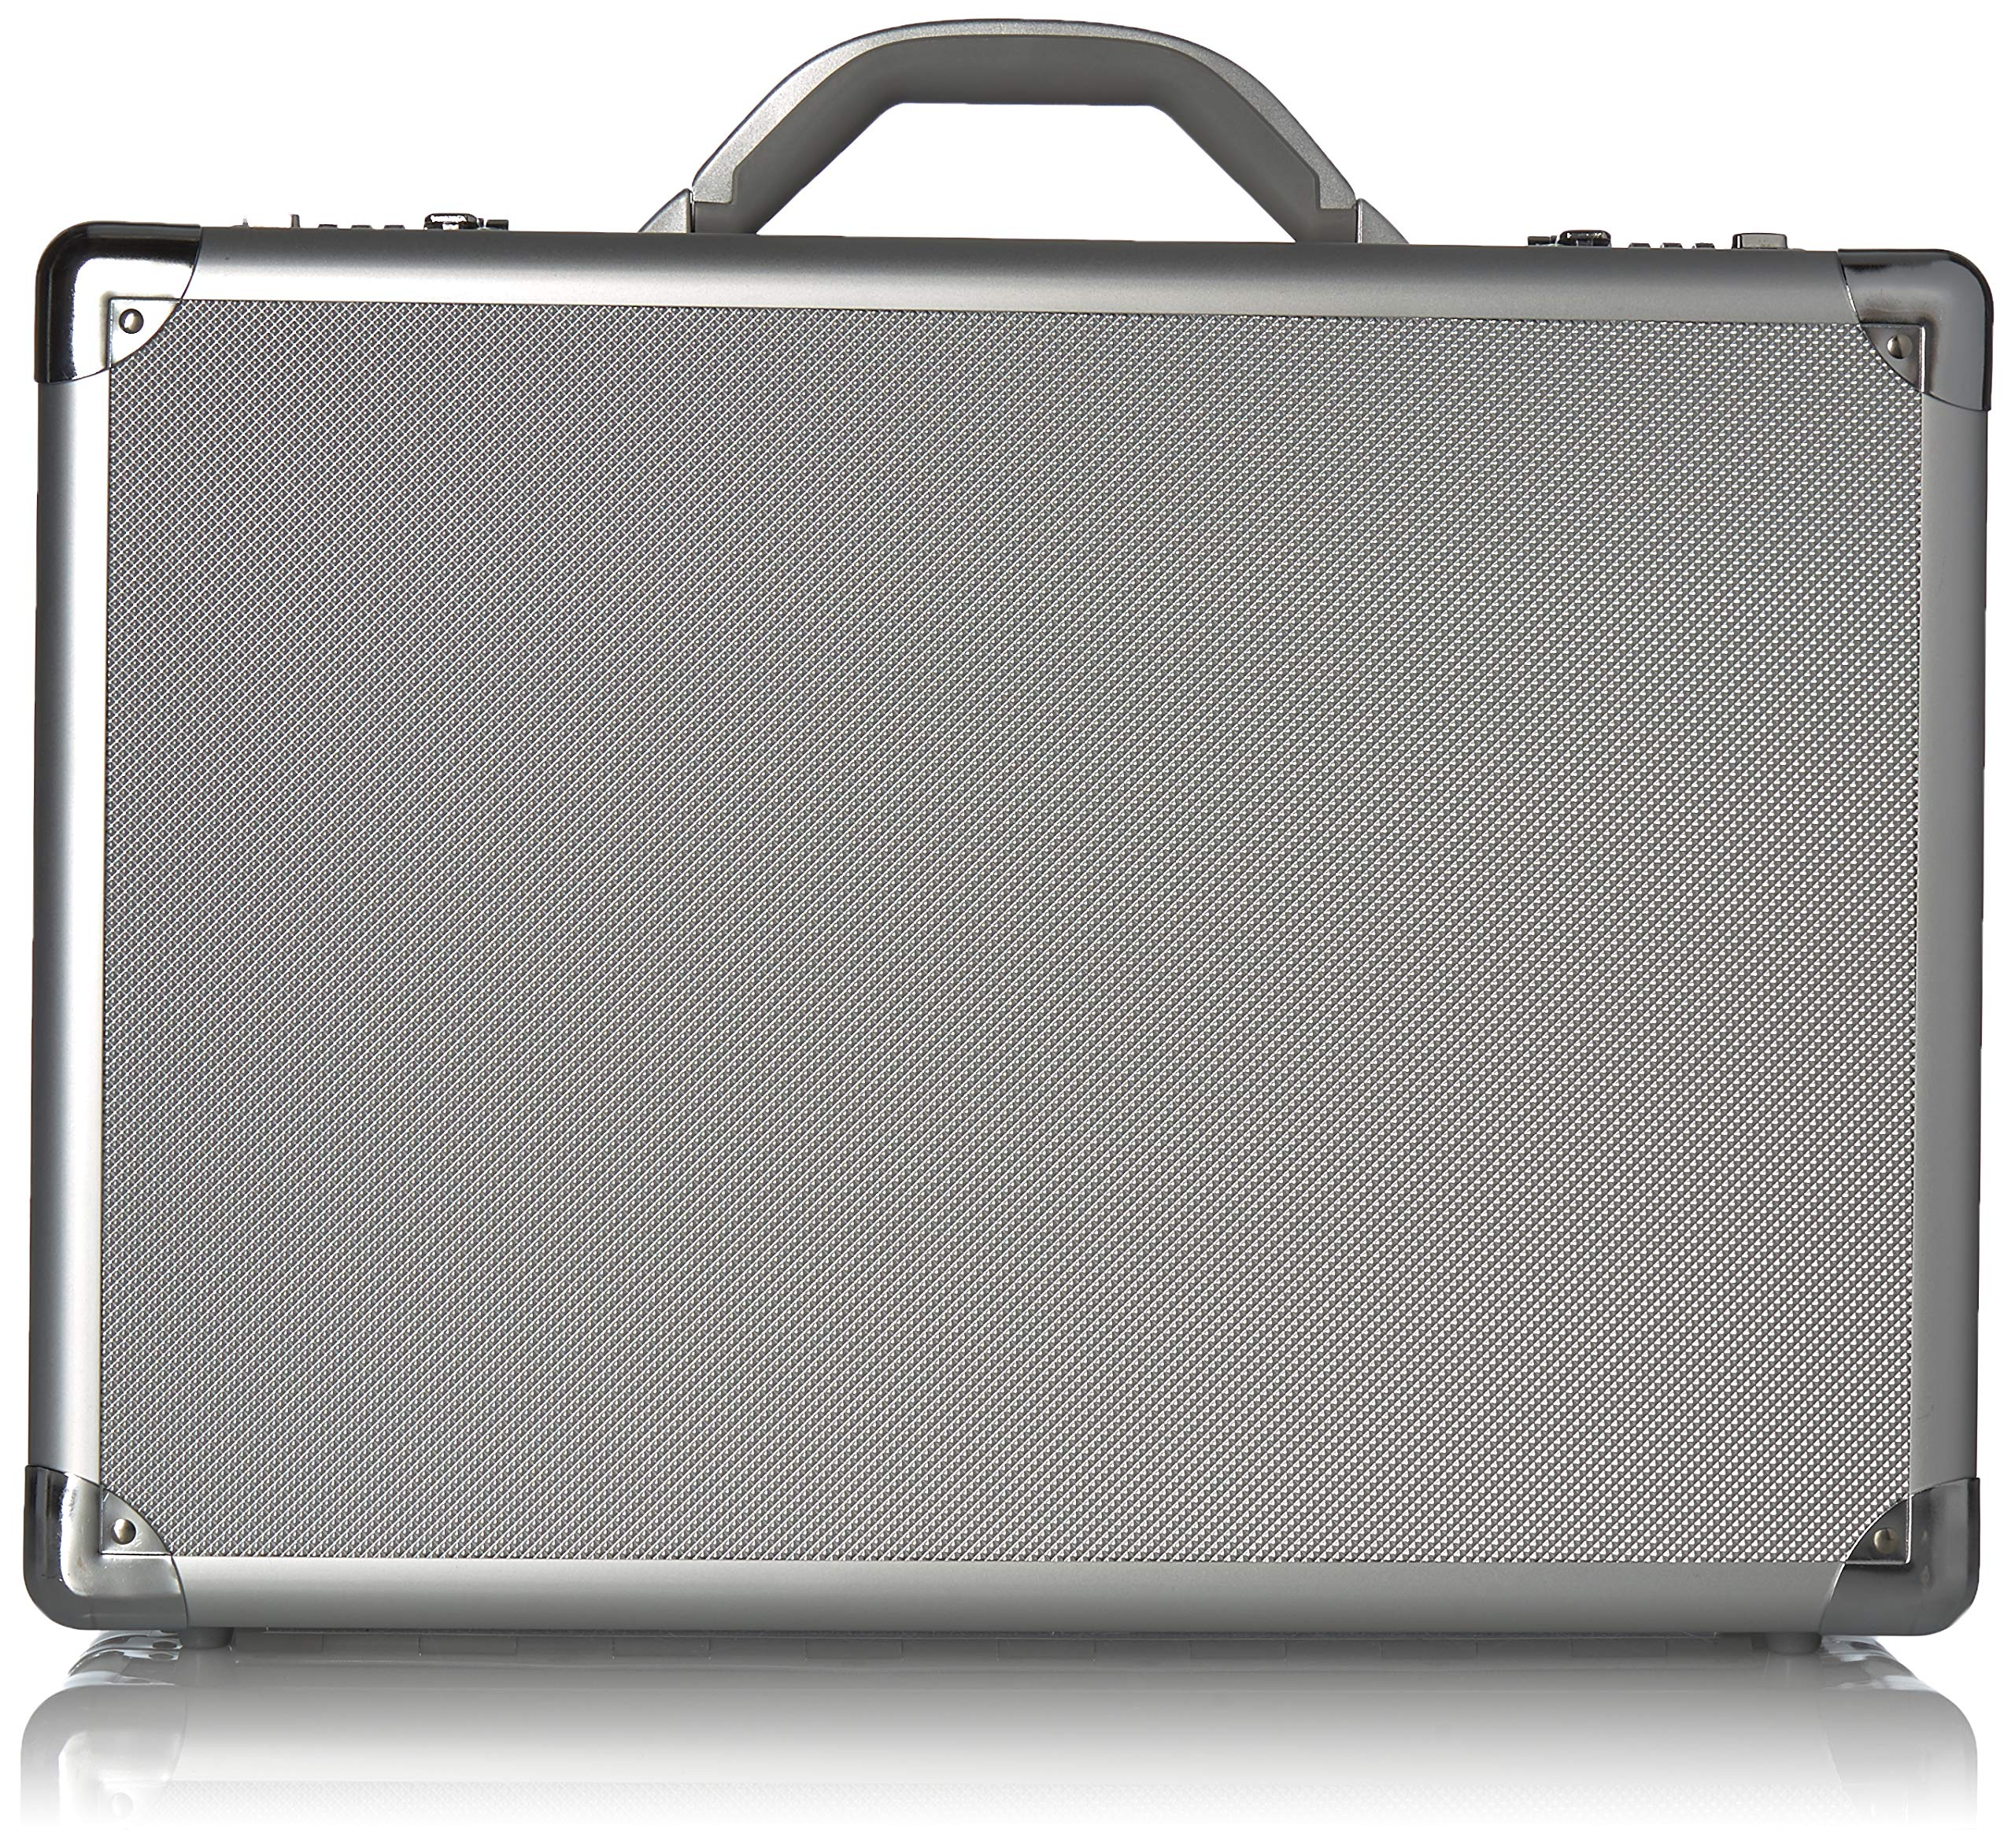 Solo New York Fifth Avenue 17.3 Inch Aluminum Laptop Attaché Briefcase, Hard-sided with Combination Locks, Silver by SOLO